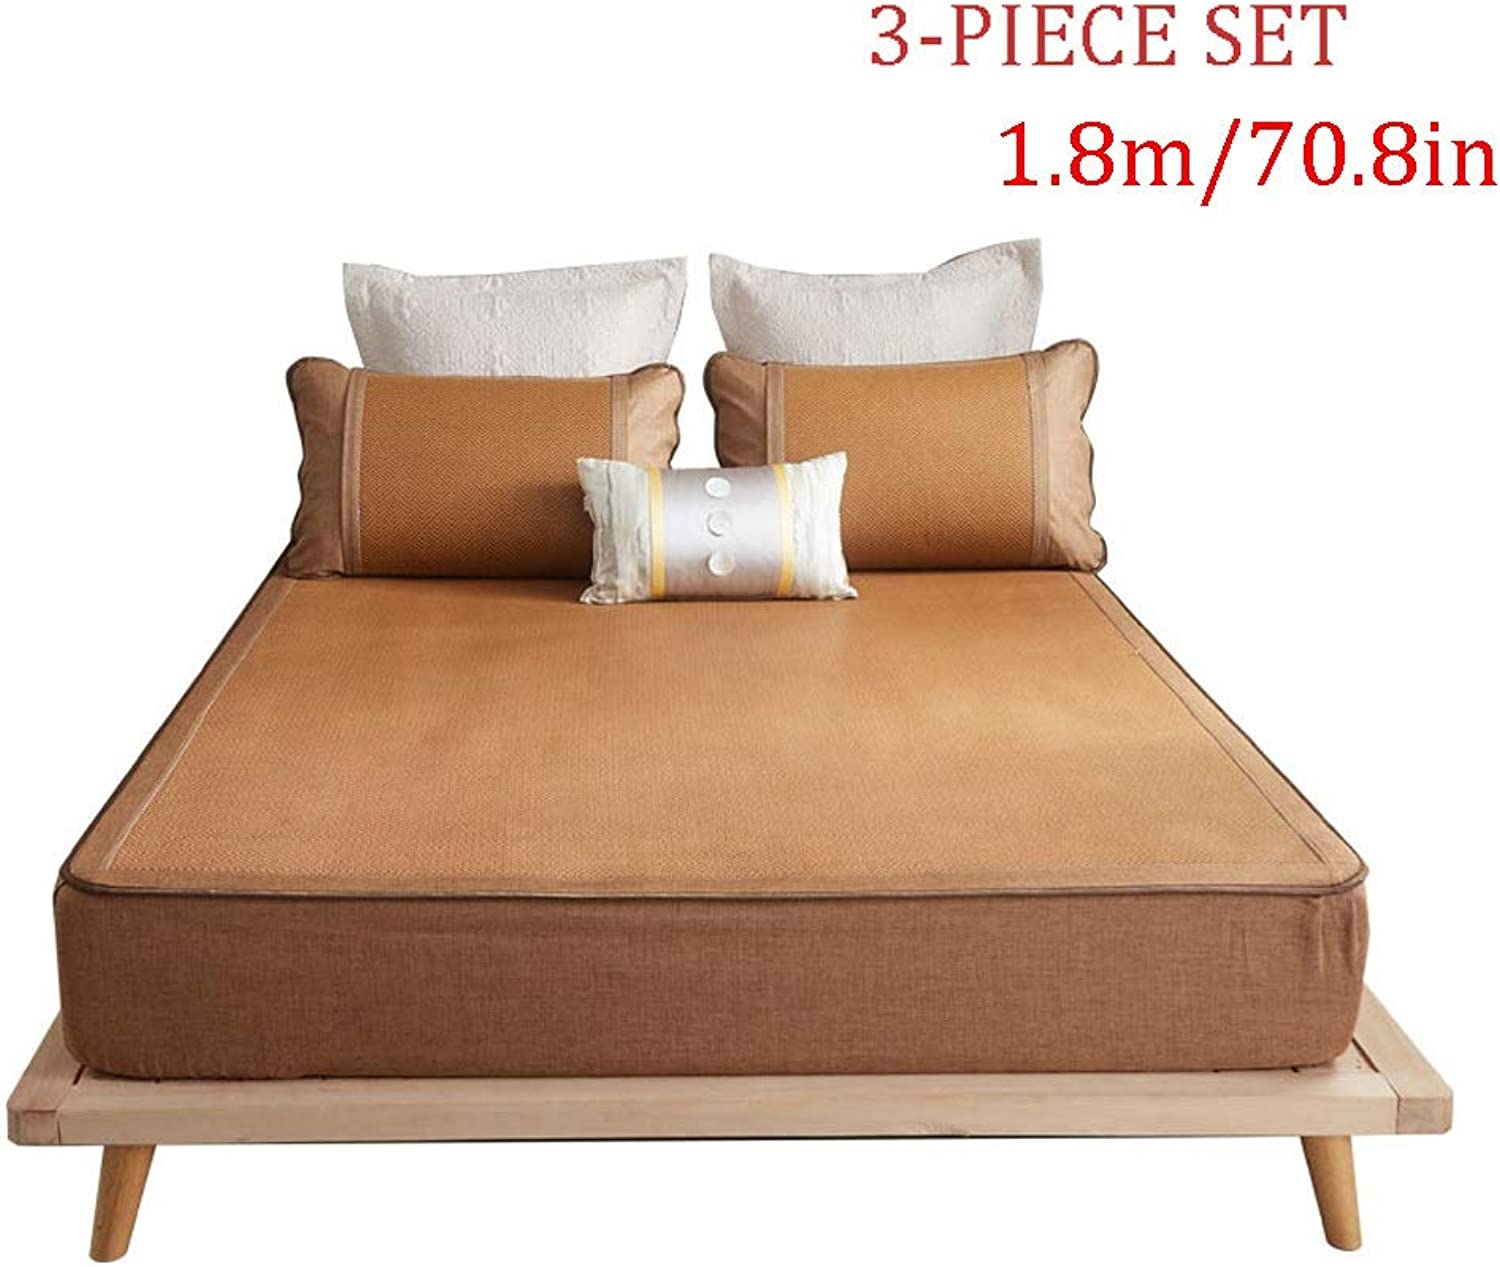 Sleeping Mat - Summer Mattress Ice Silk Mat Three-Piece, Bed Foldable, Rattan Mat 1.8m (6 Feet)